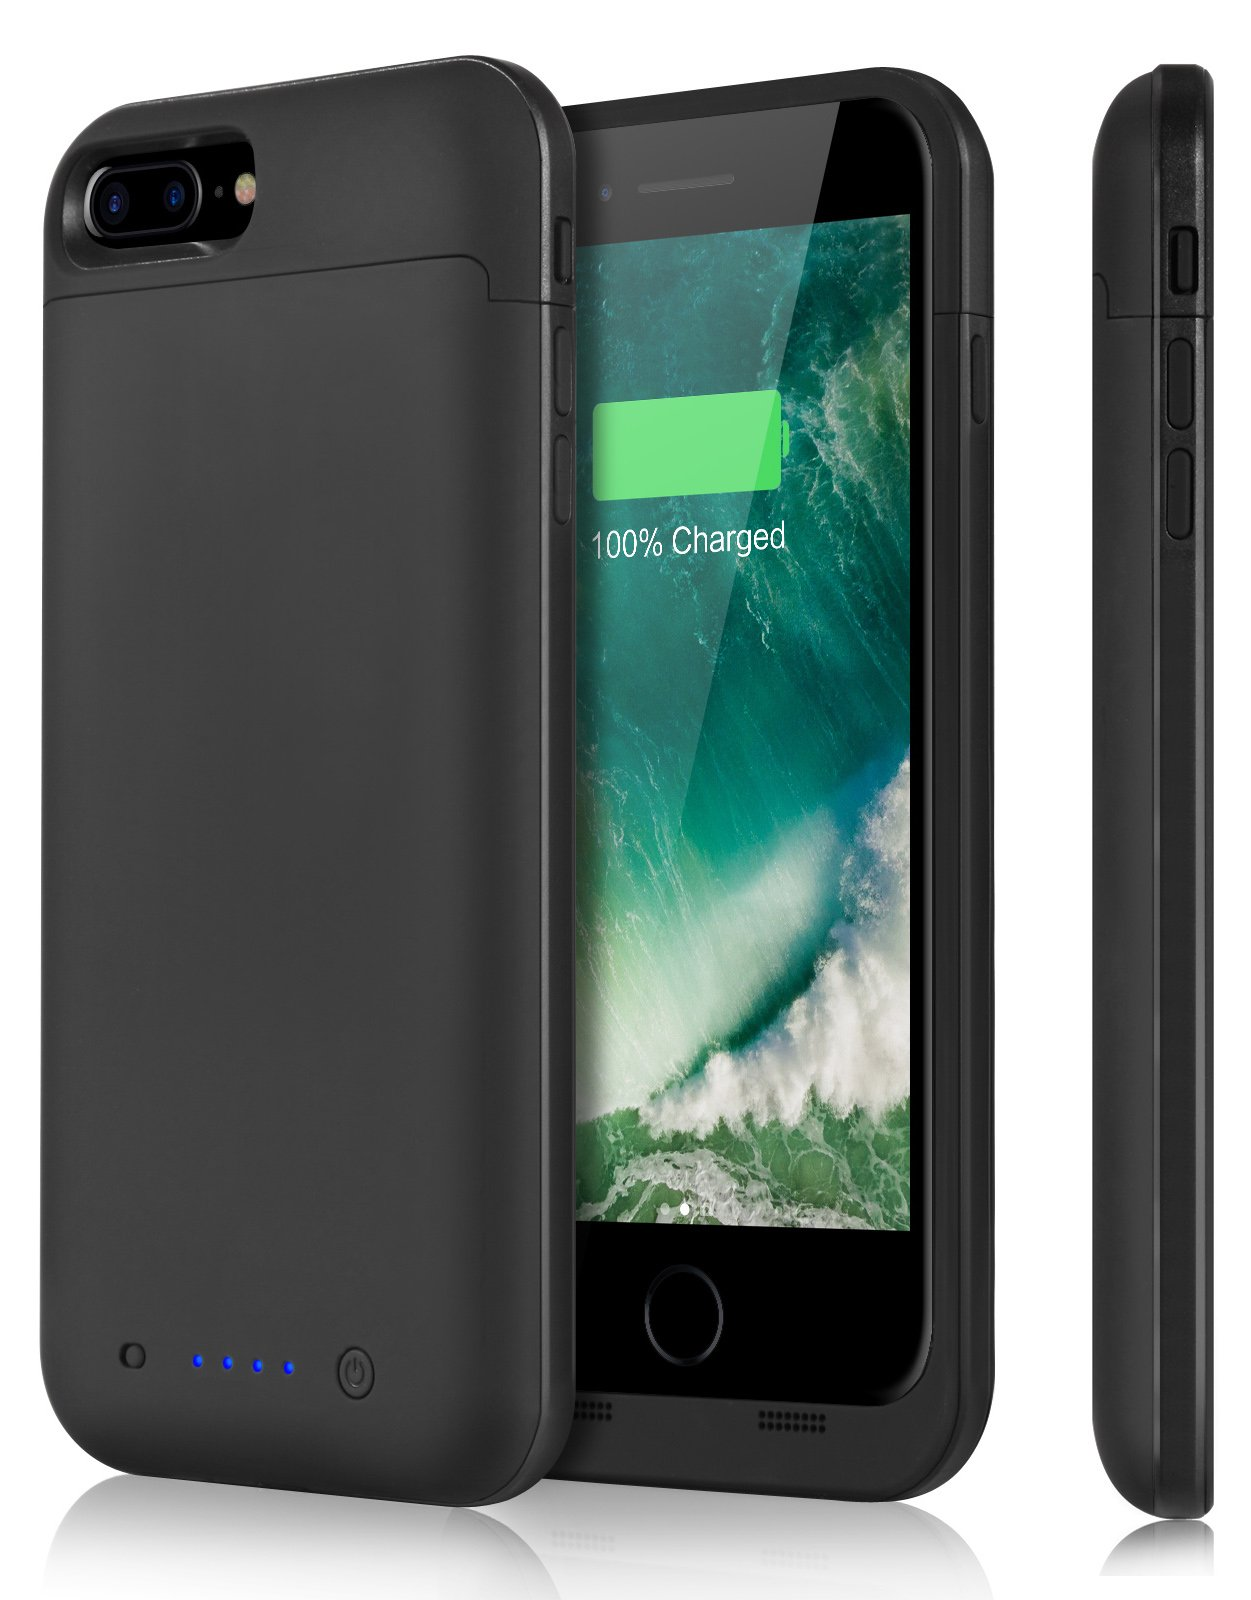 iPosible iPhone 7 Plus Battery Case   7000mAh Ultra Slim Extended Battery Backup Case Charger Pack Power Bank for iPhone 7 Plus (2016) - 5.5 inch Black [24 Month Warranty]